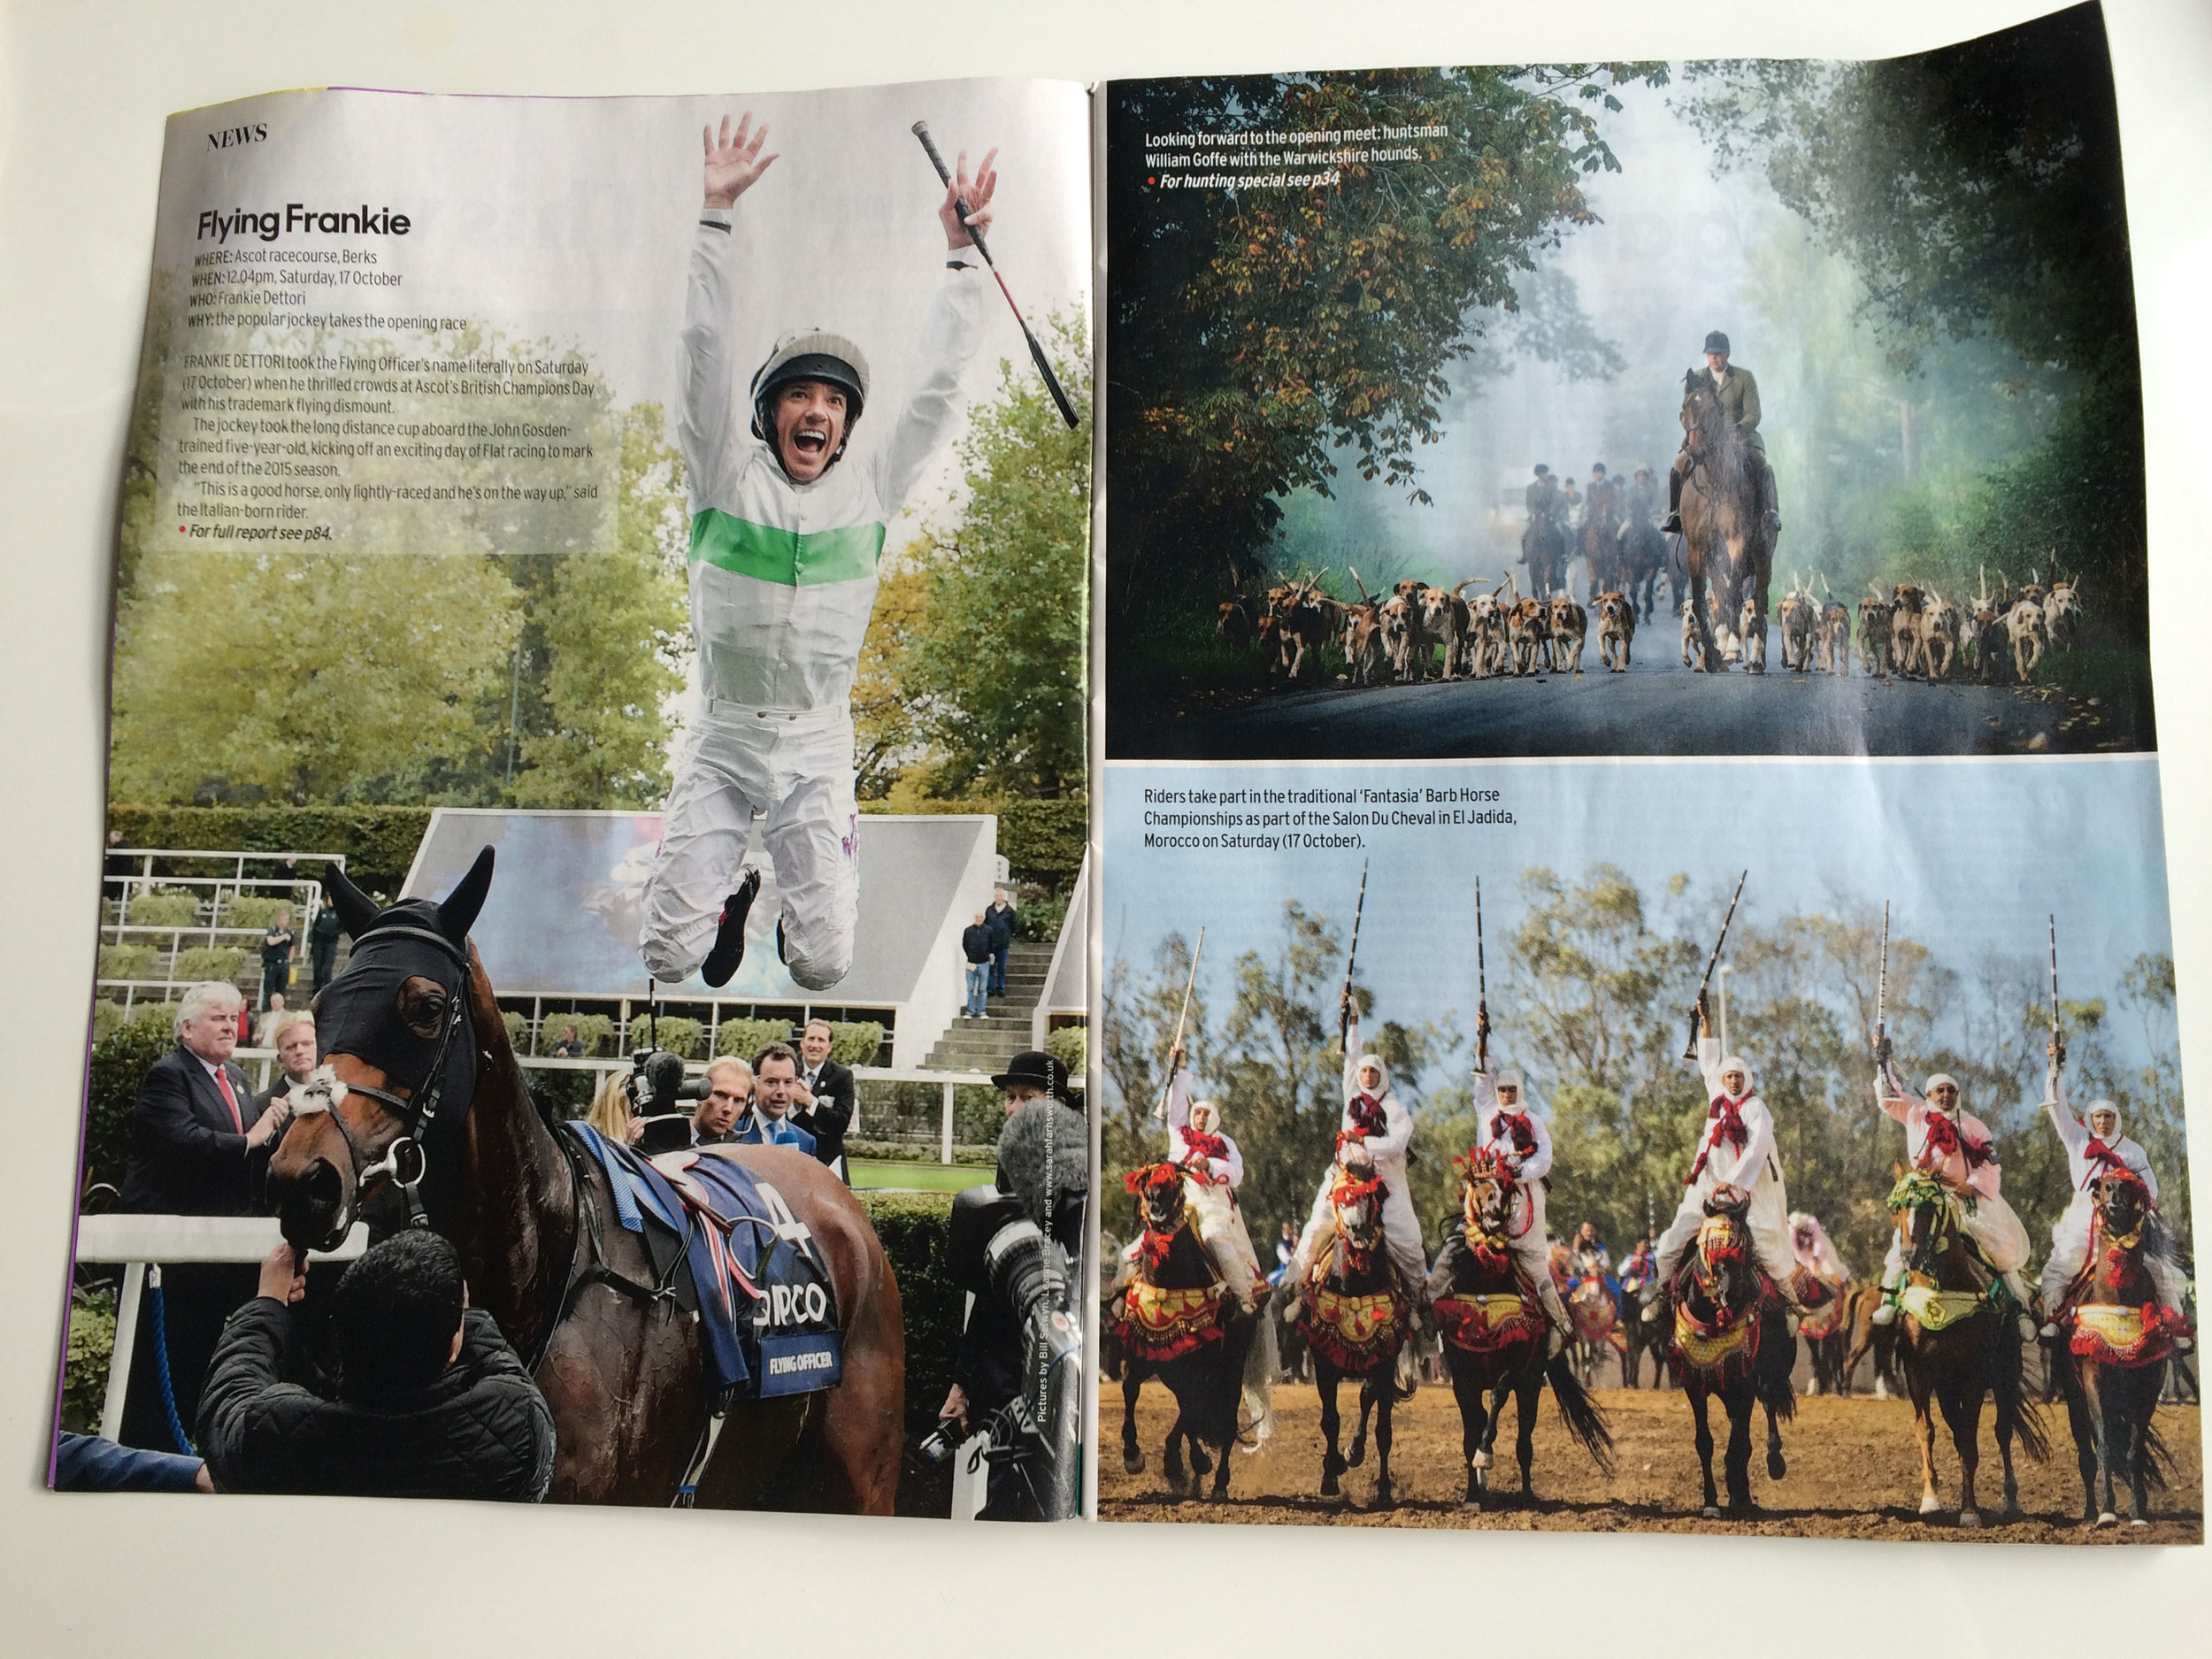 HORSE AND HOUND MAGAZINE - MY PICTURE IF THE BOTTOM RIGHT